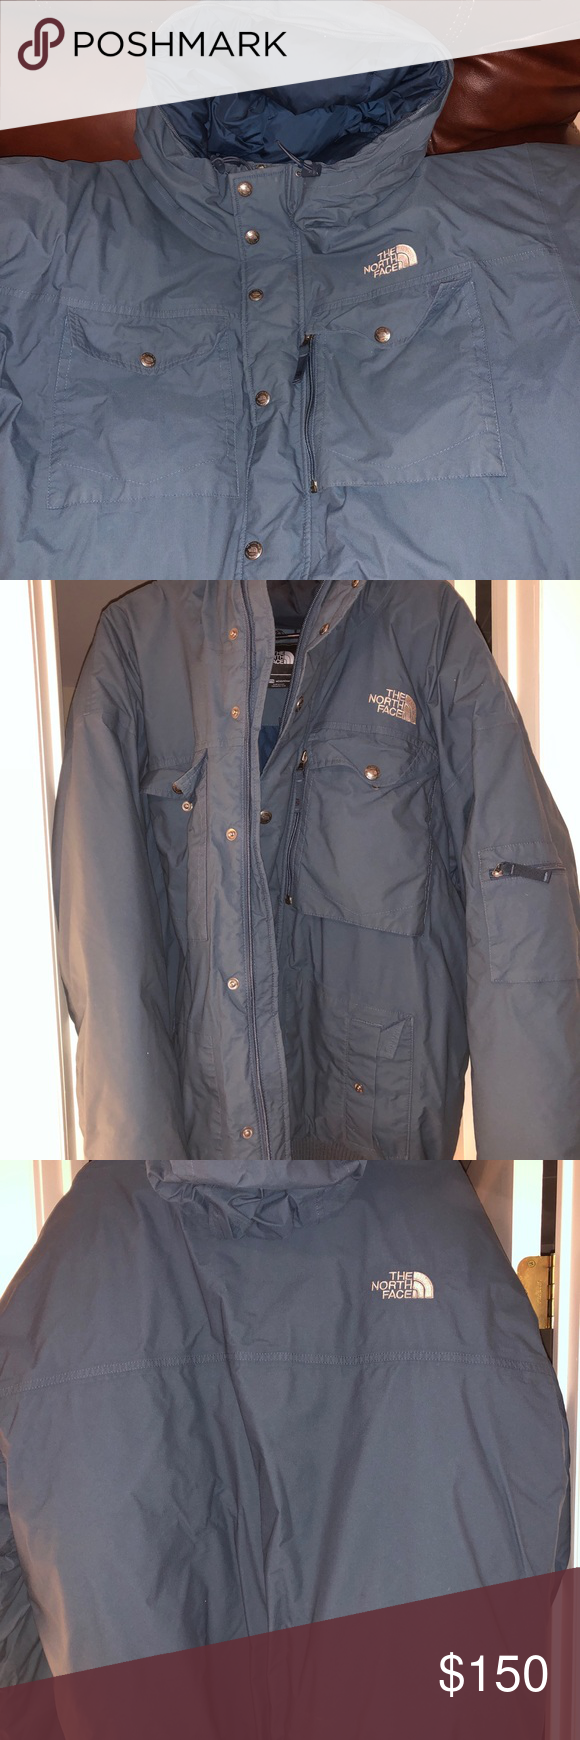 The North Face Winter Jacket Winter Jacket North Face Winter Coat The North Face [ 1740 x 580 Pixel ]